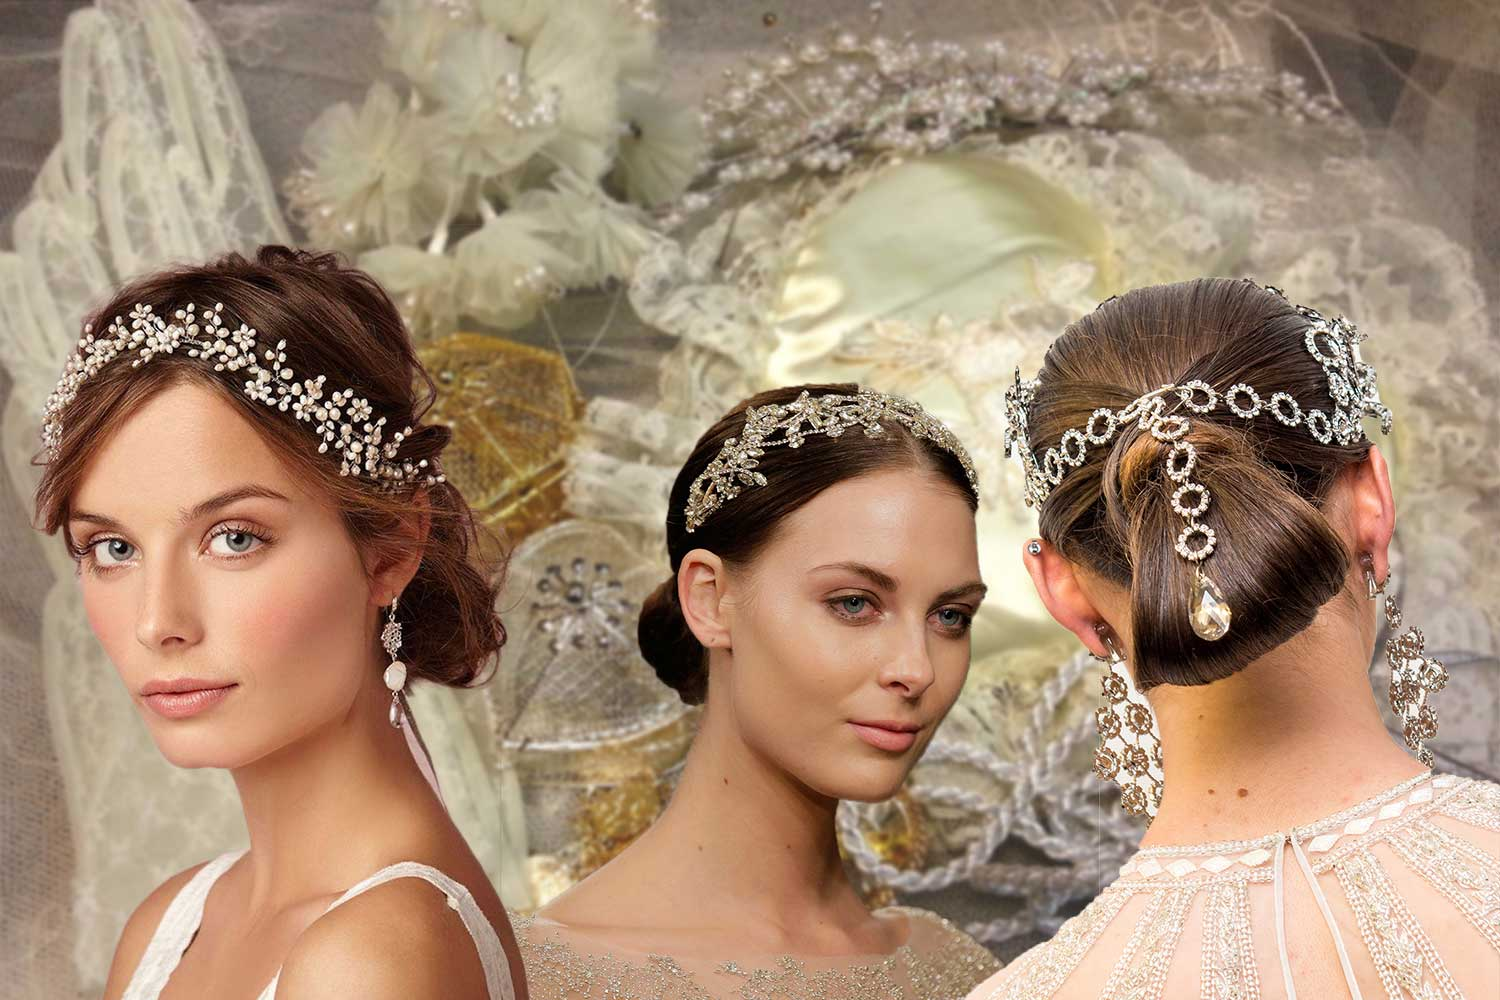 Bridal Hairstyles 2016: Wedding Hairstyles & Accessories To Make You Look Like A